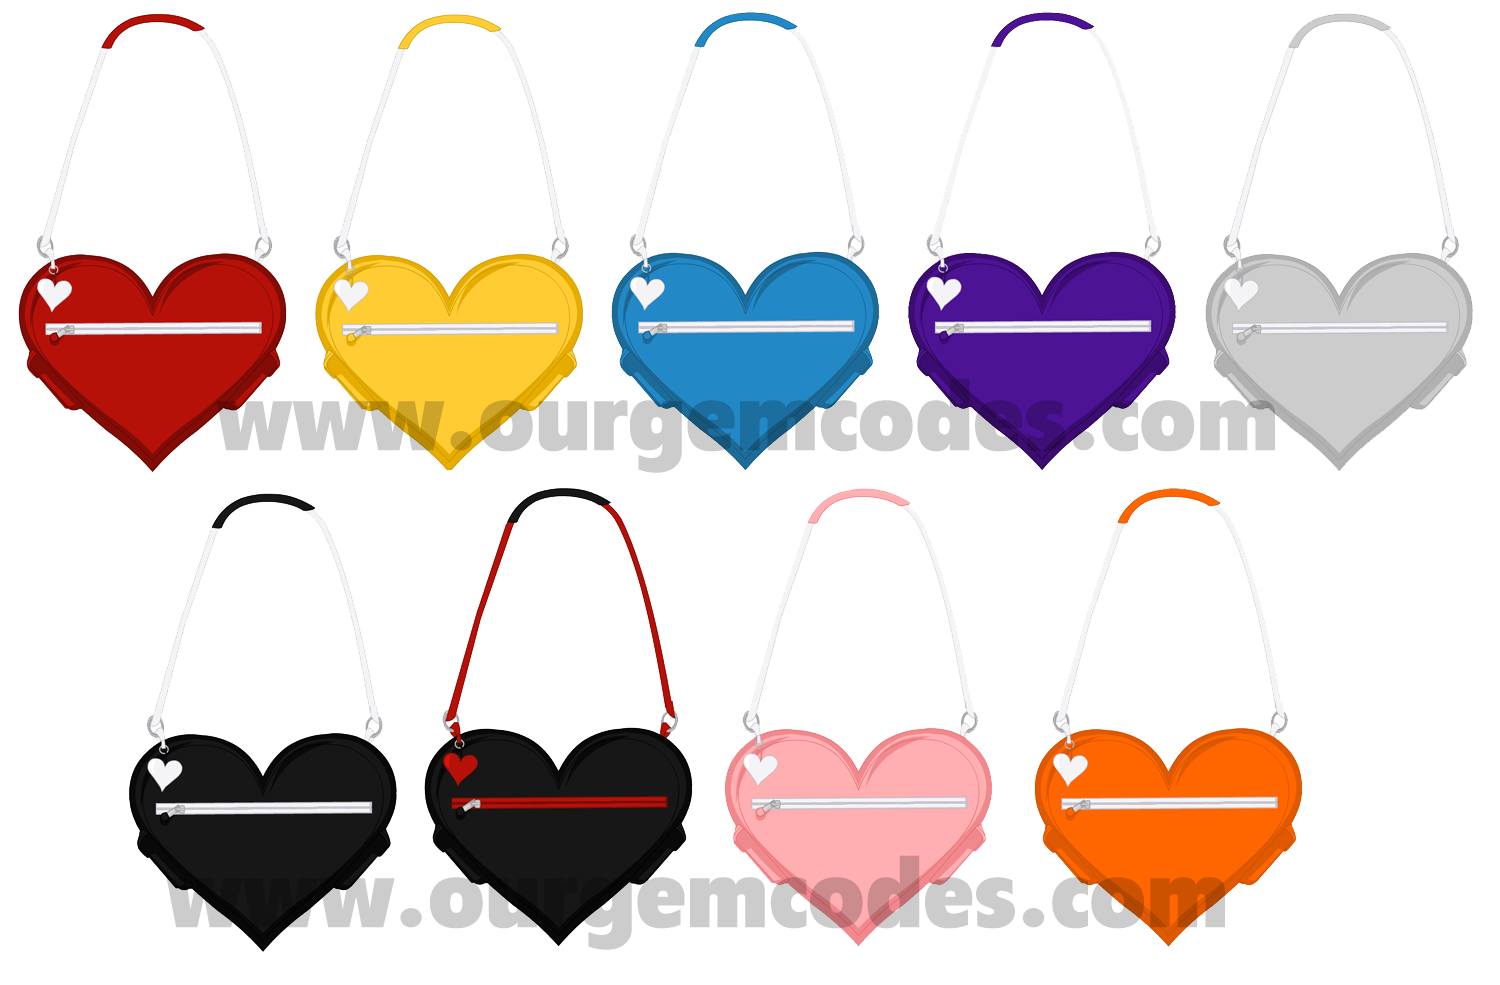 February clipart 3 heart. Event items ourgemcodes messenger